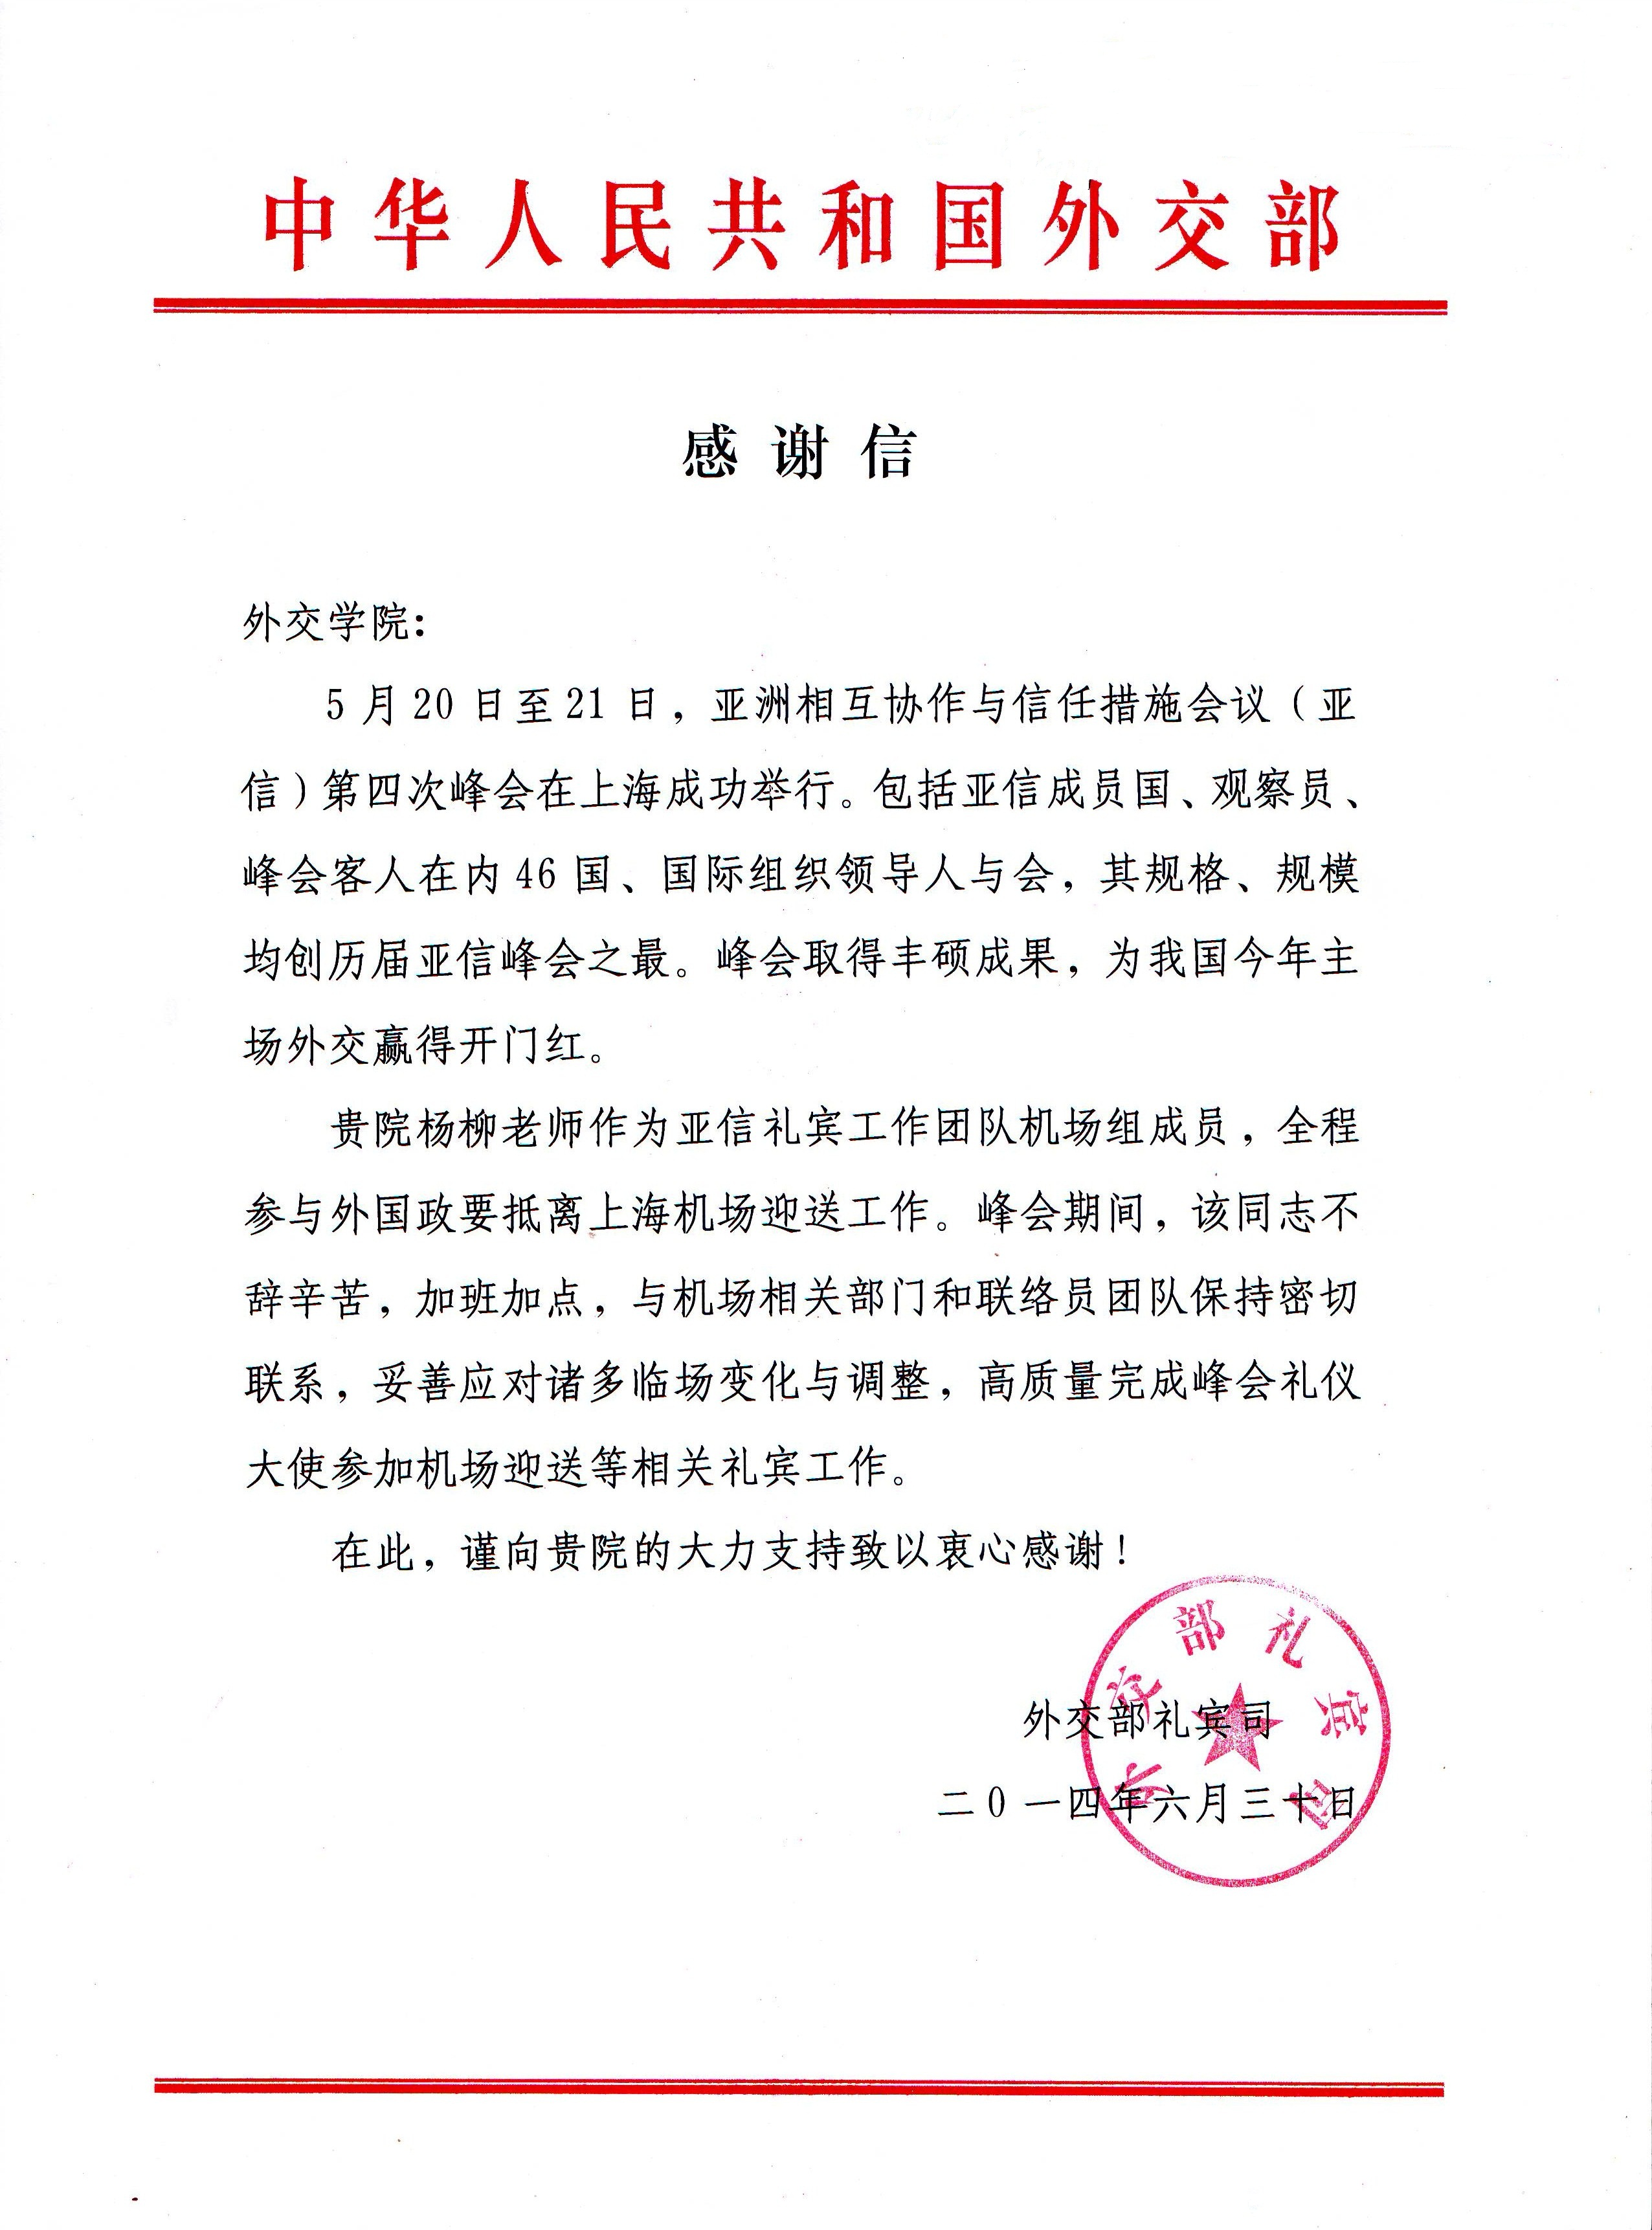 Chinese Alphabet Chart: Letter of appreciation from Chinese foreign ministry.jpg ,Chart